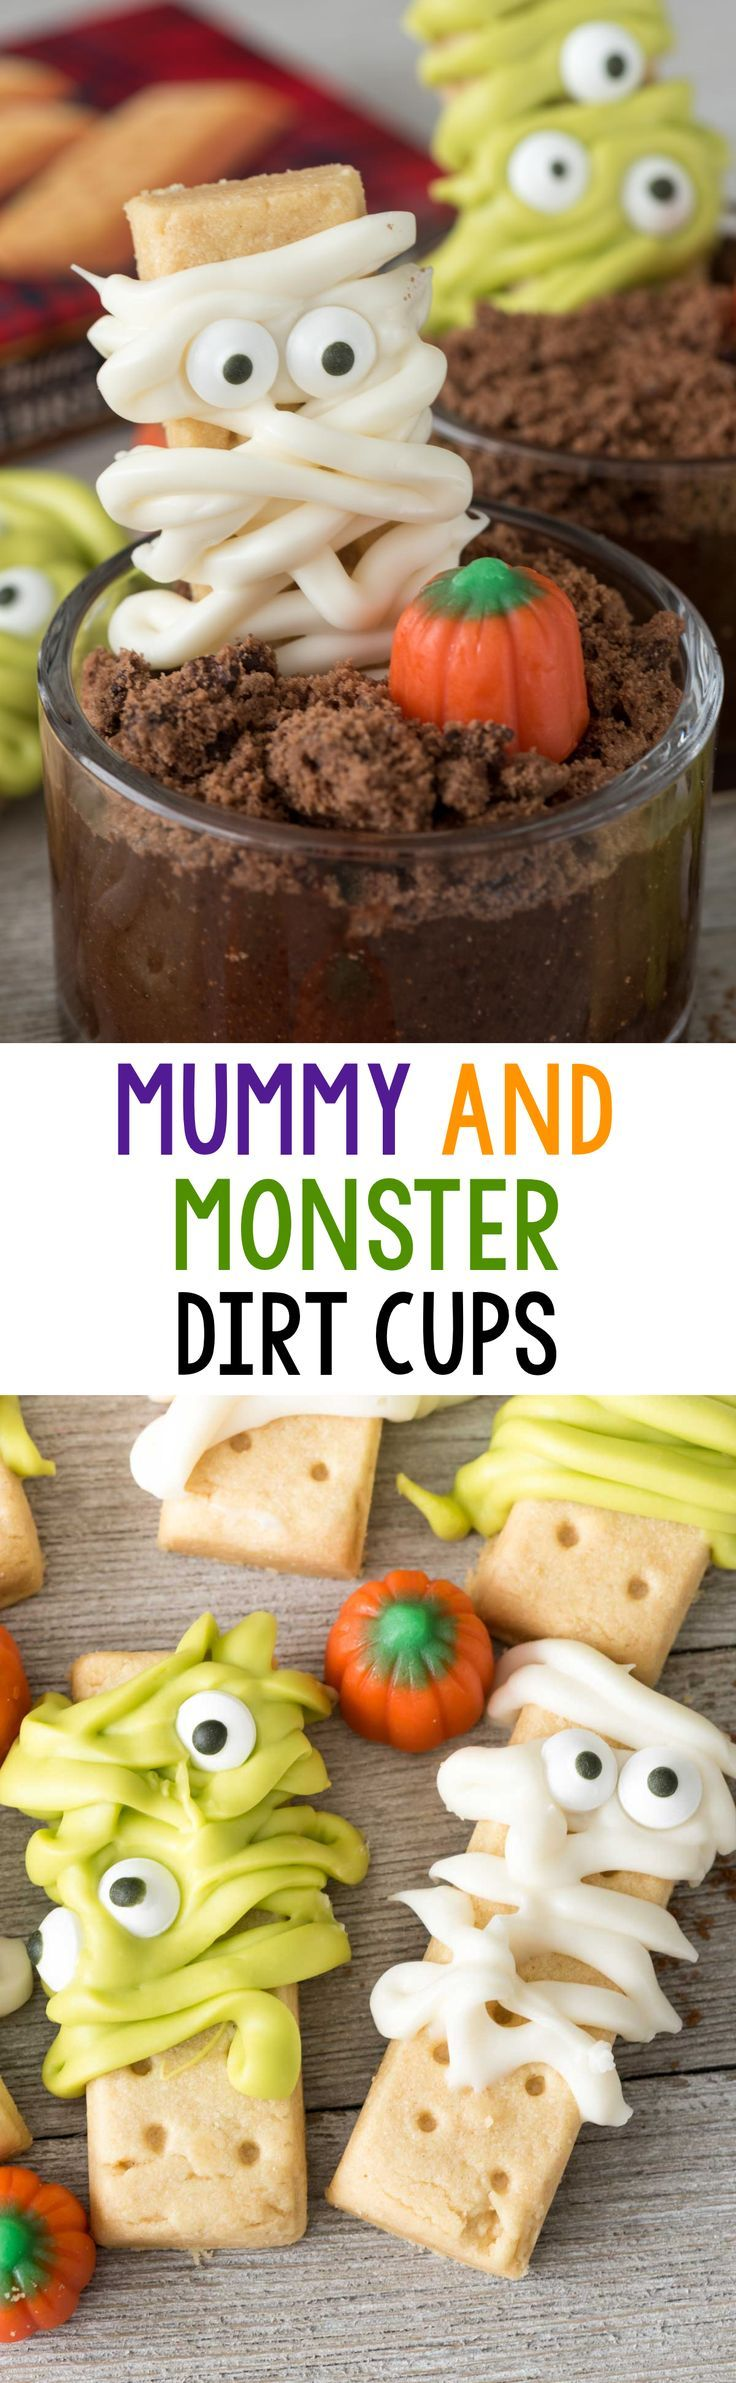 Easy Monster and Mummy Dirt Cups - make monsters and mummies out of shortbread cookies and melted candy! Stick them in an easy chocolate pudding dirt cup for a fun Halloween Treat.